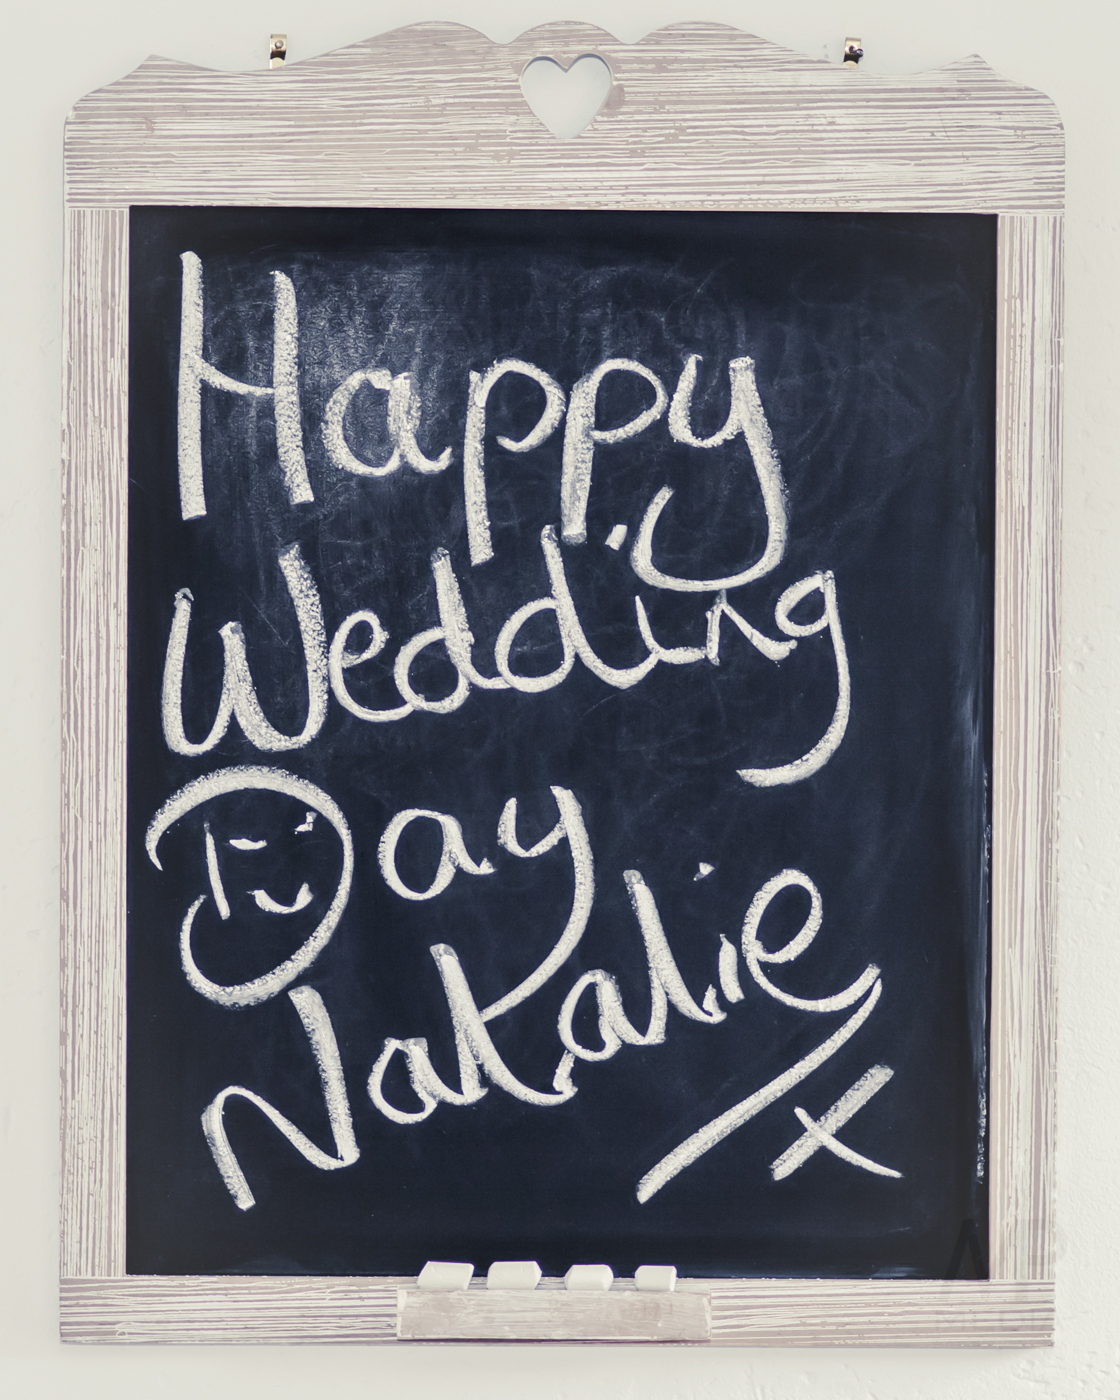 005 - Chris and Natalies Wedding (MAIN) - DO NOT SHARE THIS IMAGES ONLINE -2.JPG